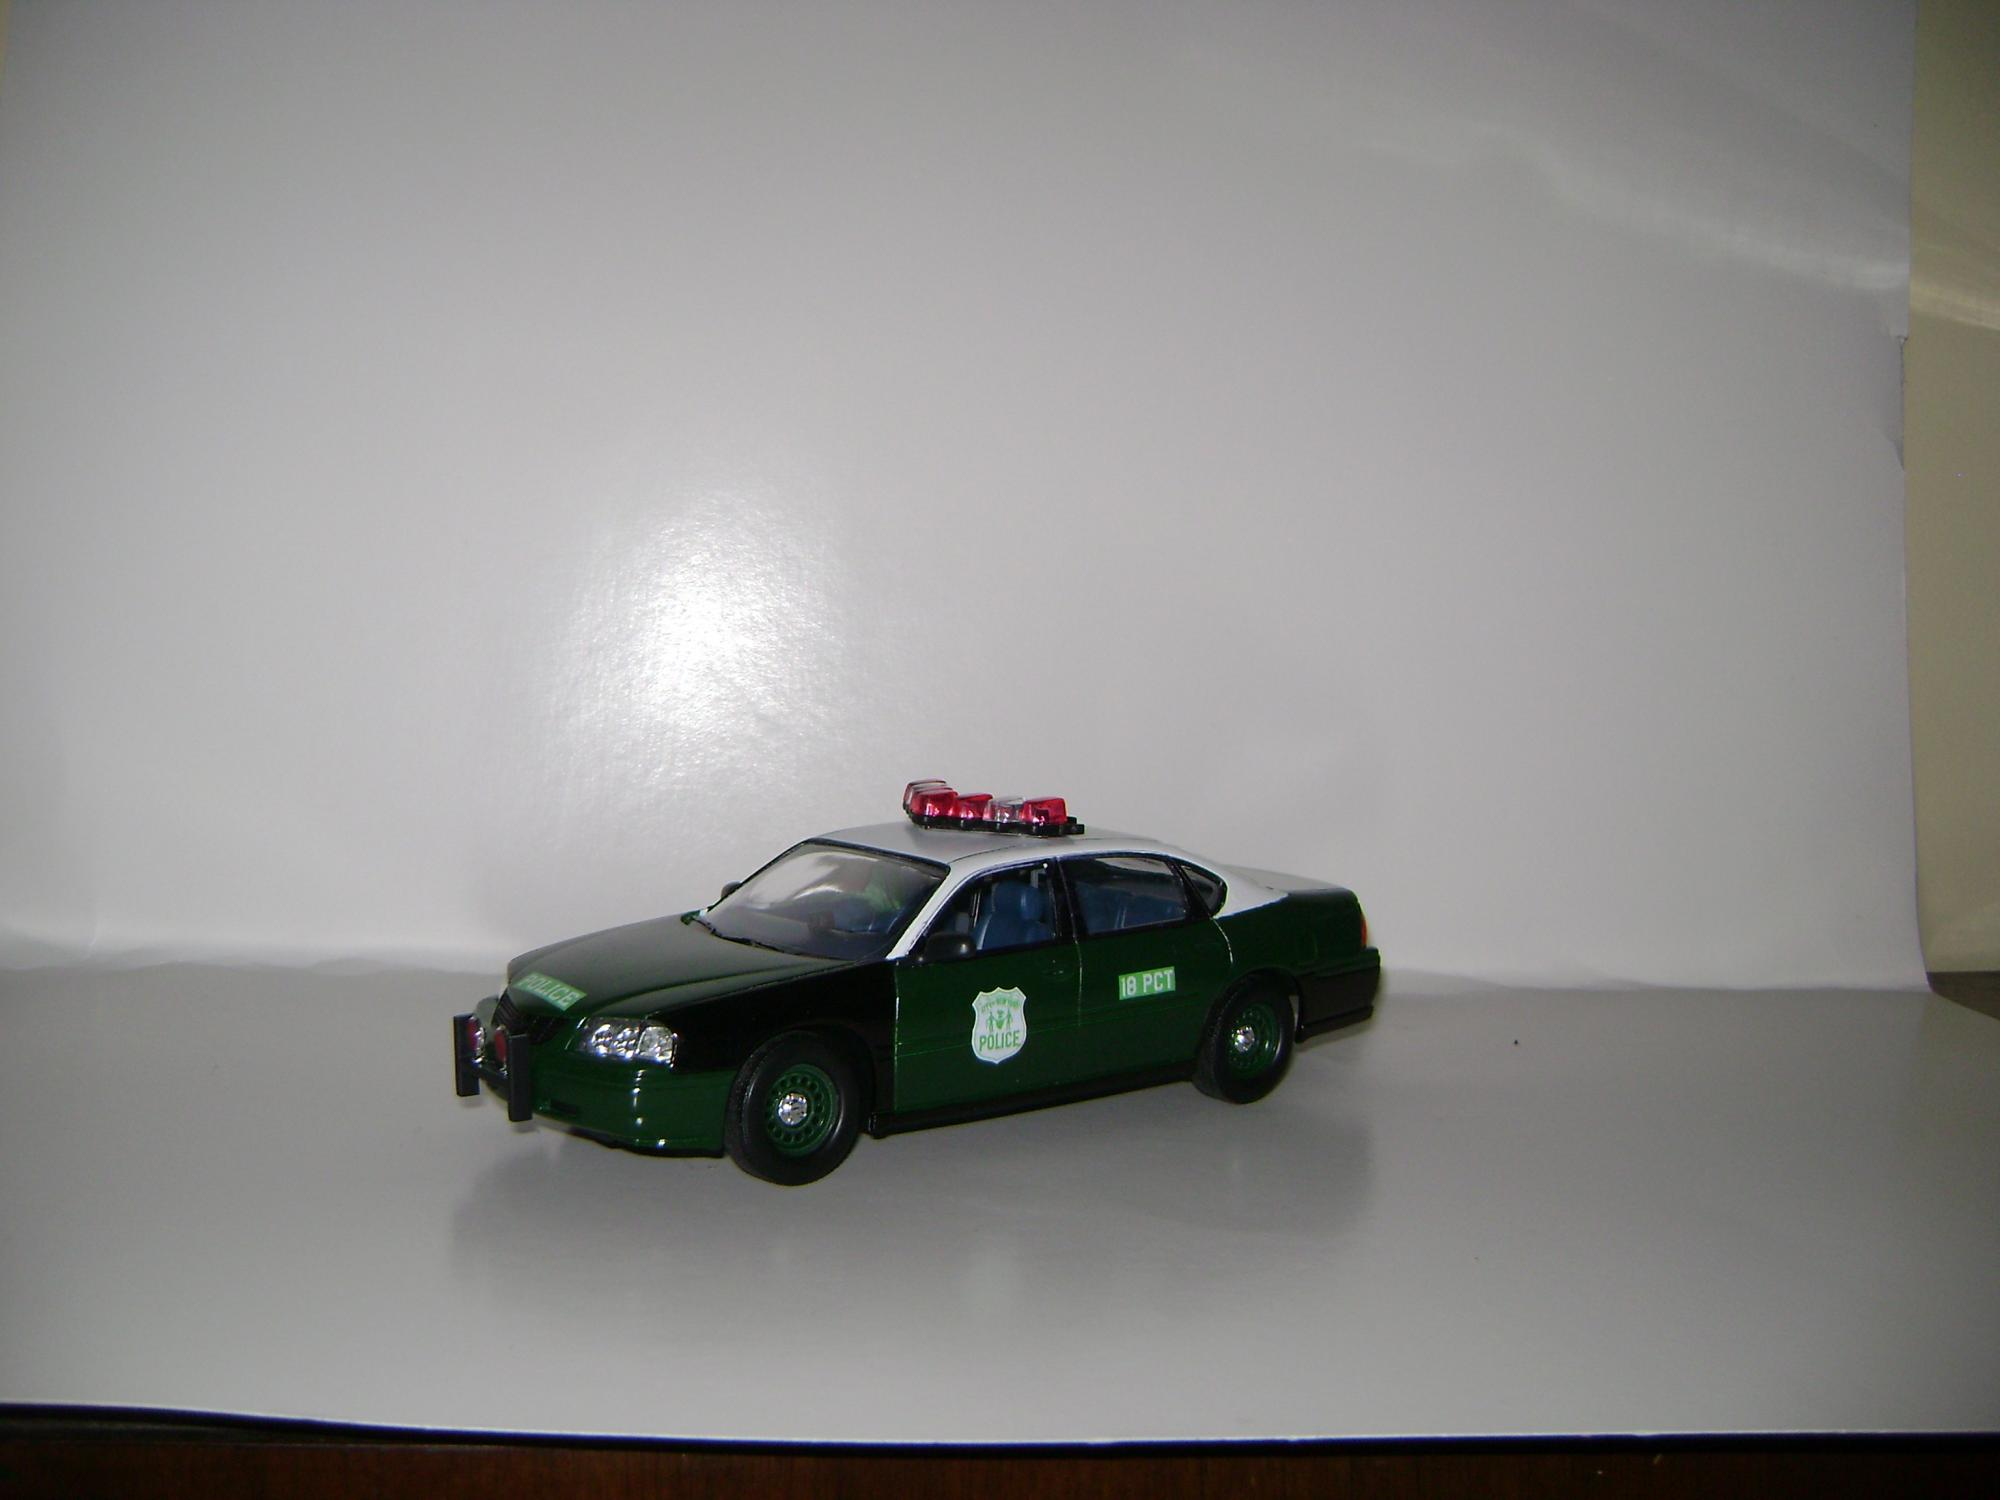 nypd new car old look under glass model cars magazine forum. Black Bedroom Furniture Sets. Home Design Ideas